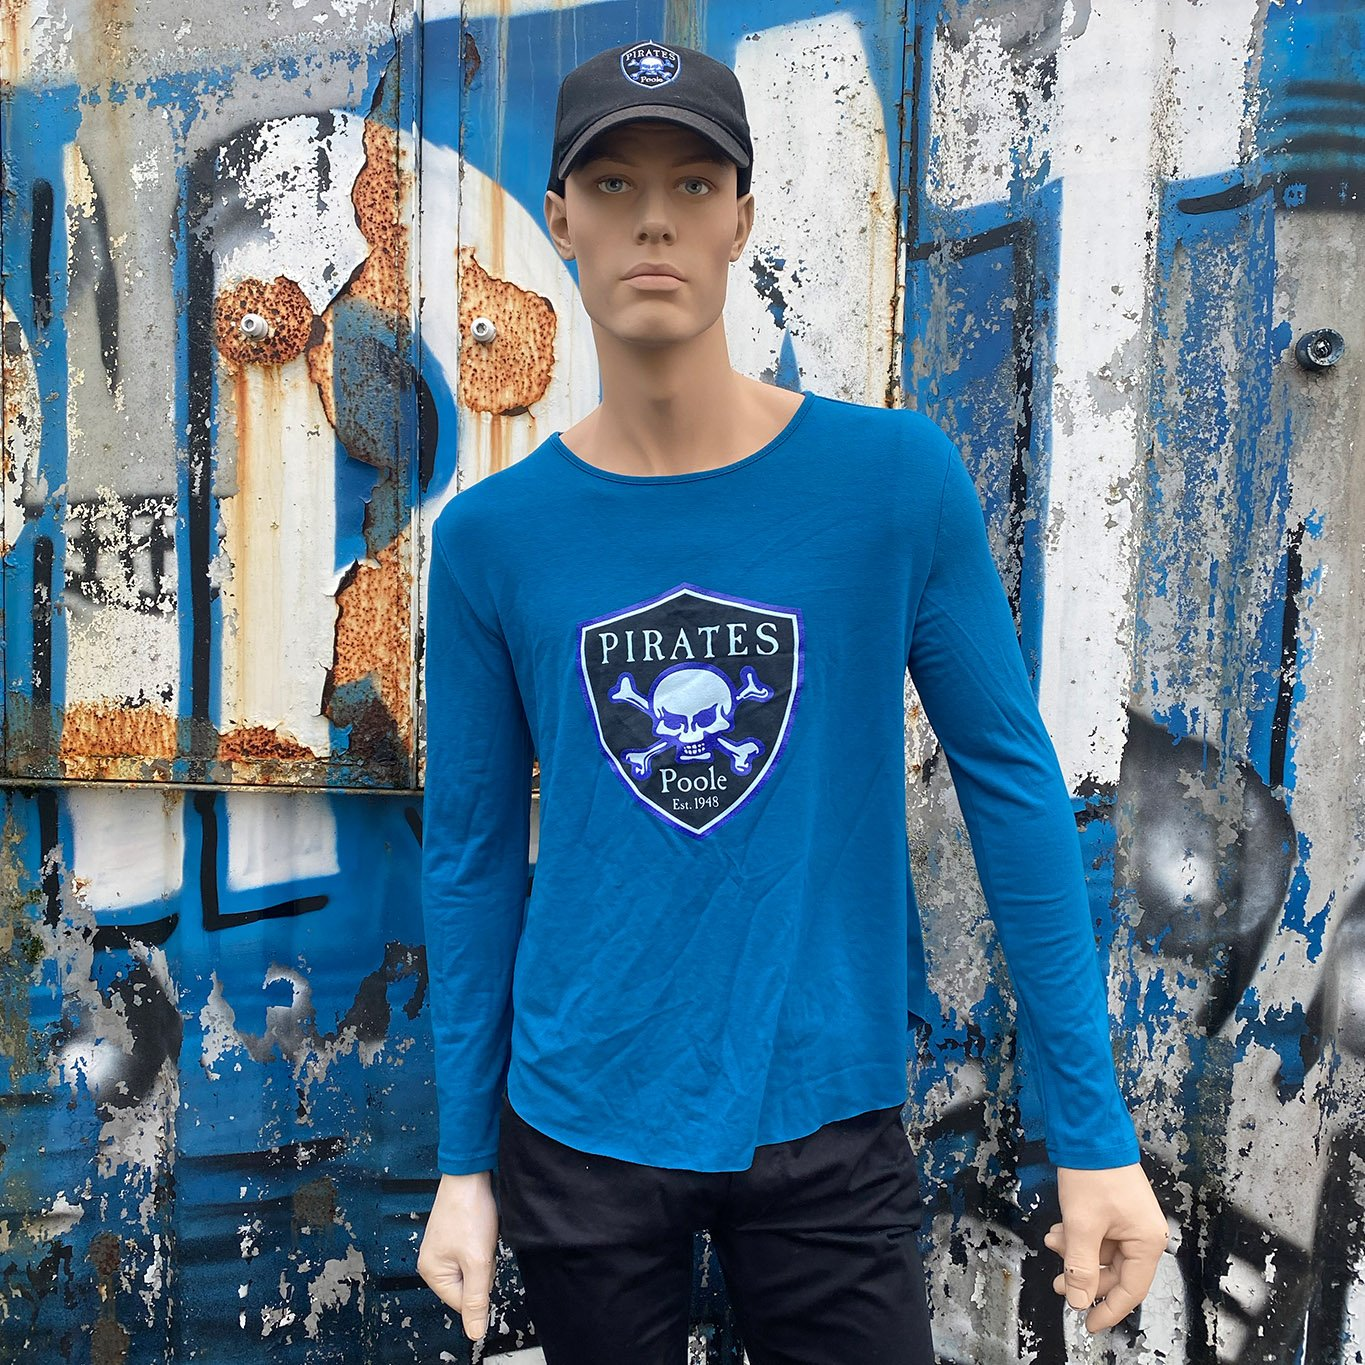 POOLE PIRATES SHIELD T-SHIRT LONG SLEEVE TEAL